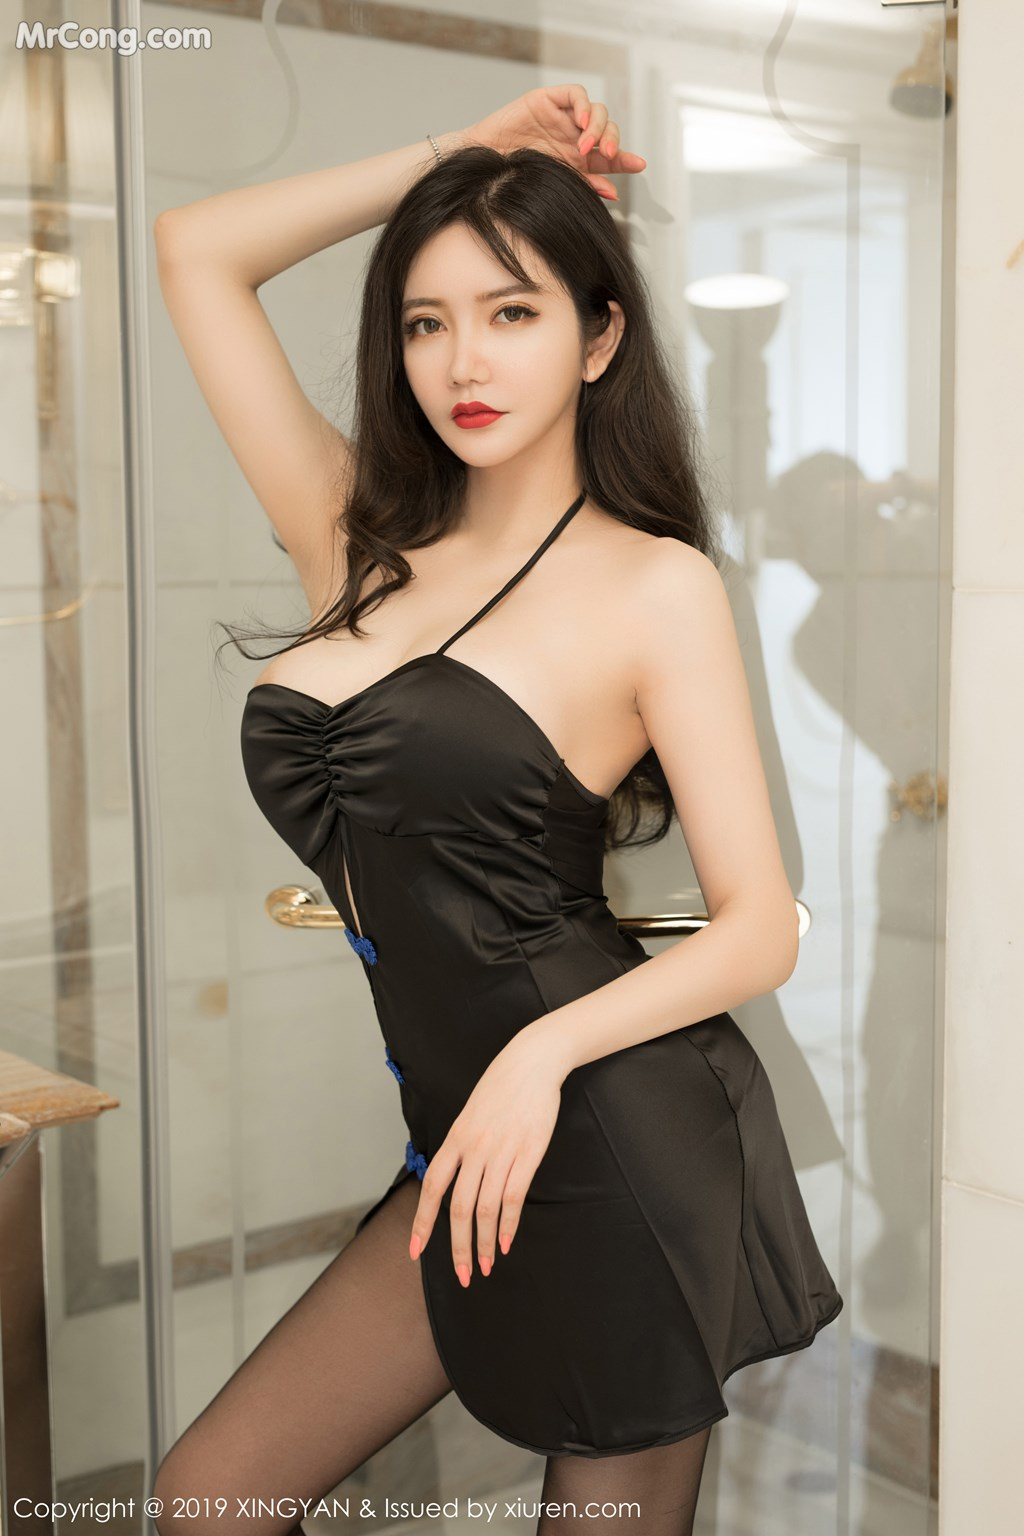 Image XingYan-Vol.123-MrCong.com-024 in post XingYan Vol.123: 心妍小公主 (47 ảnh)